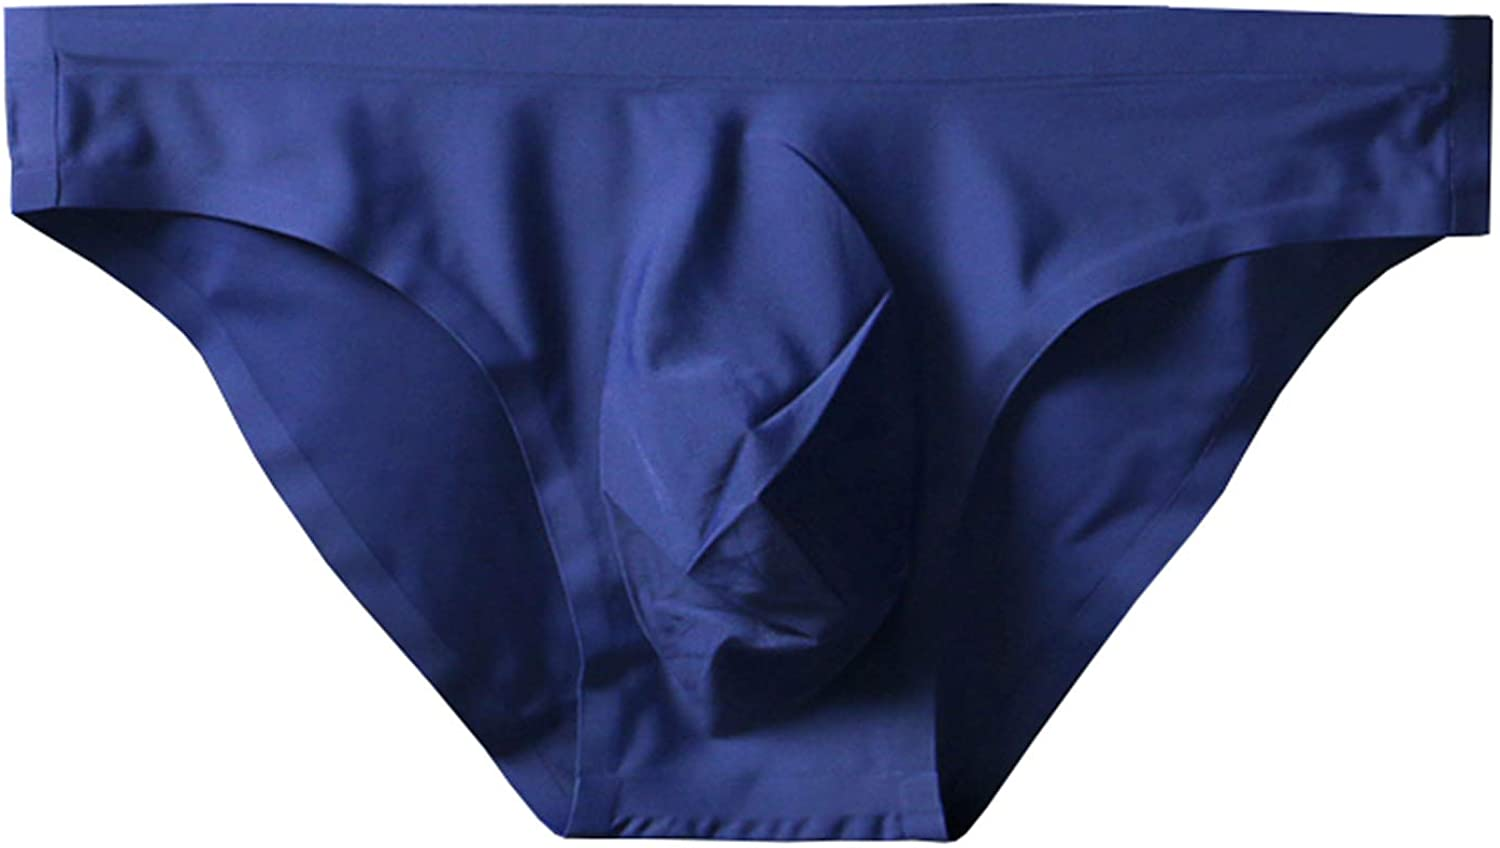 ONEFIT Mens Briefs Seamless Triangle Panties Ice Silk Low Waist Fast Dry Shorts